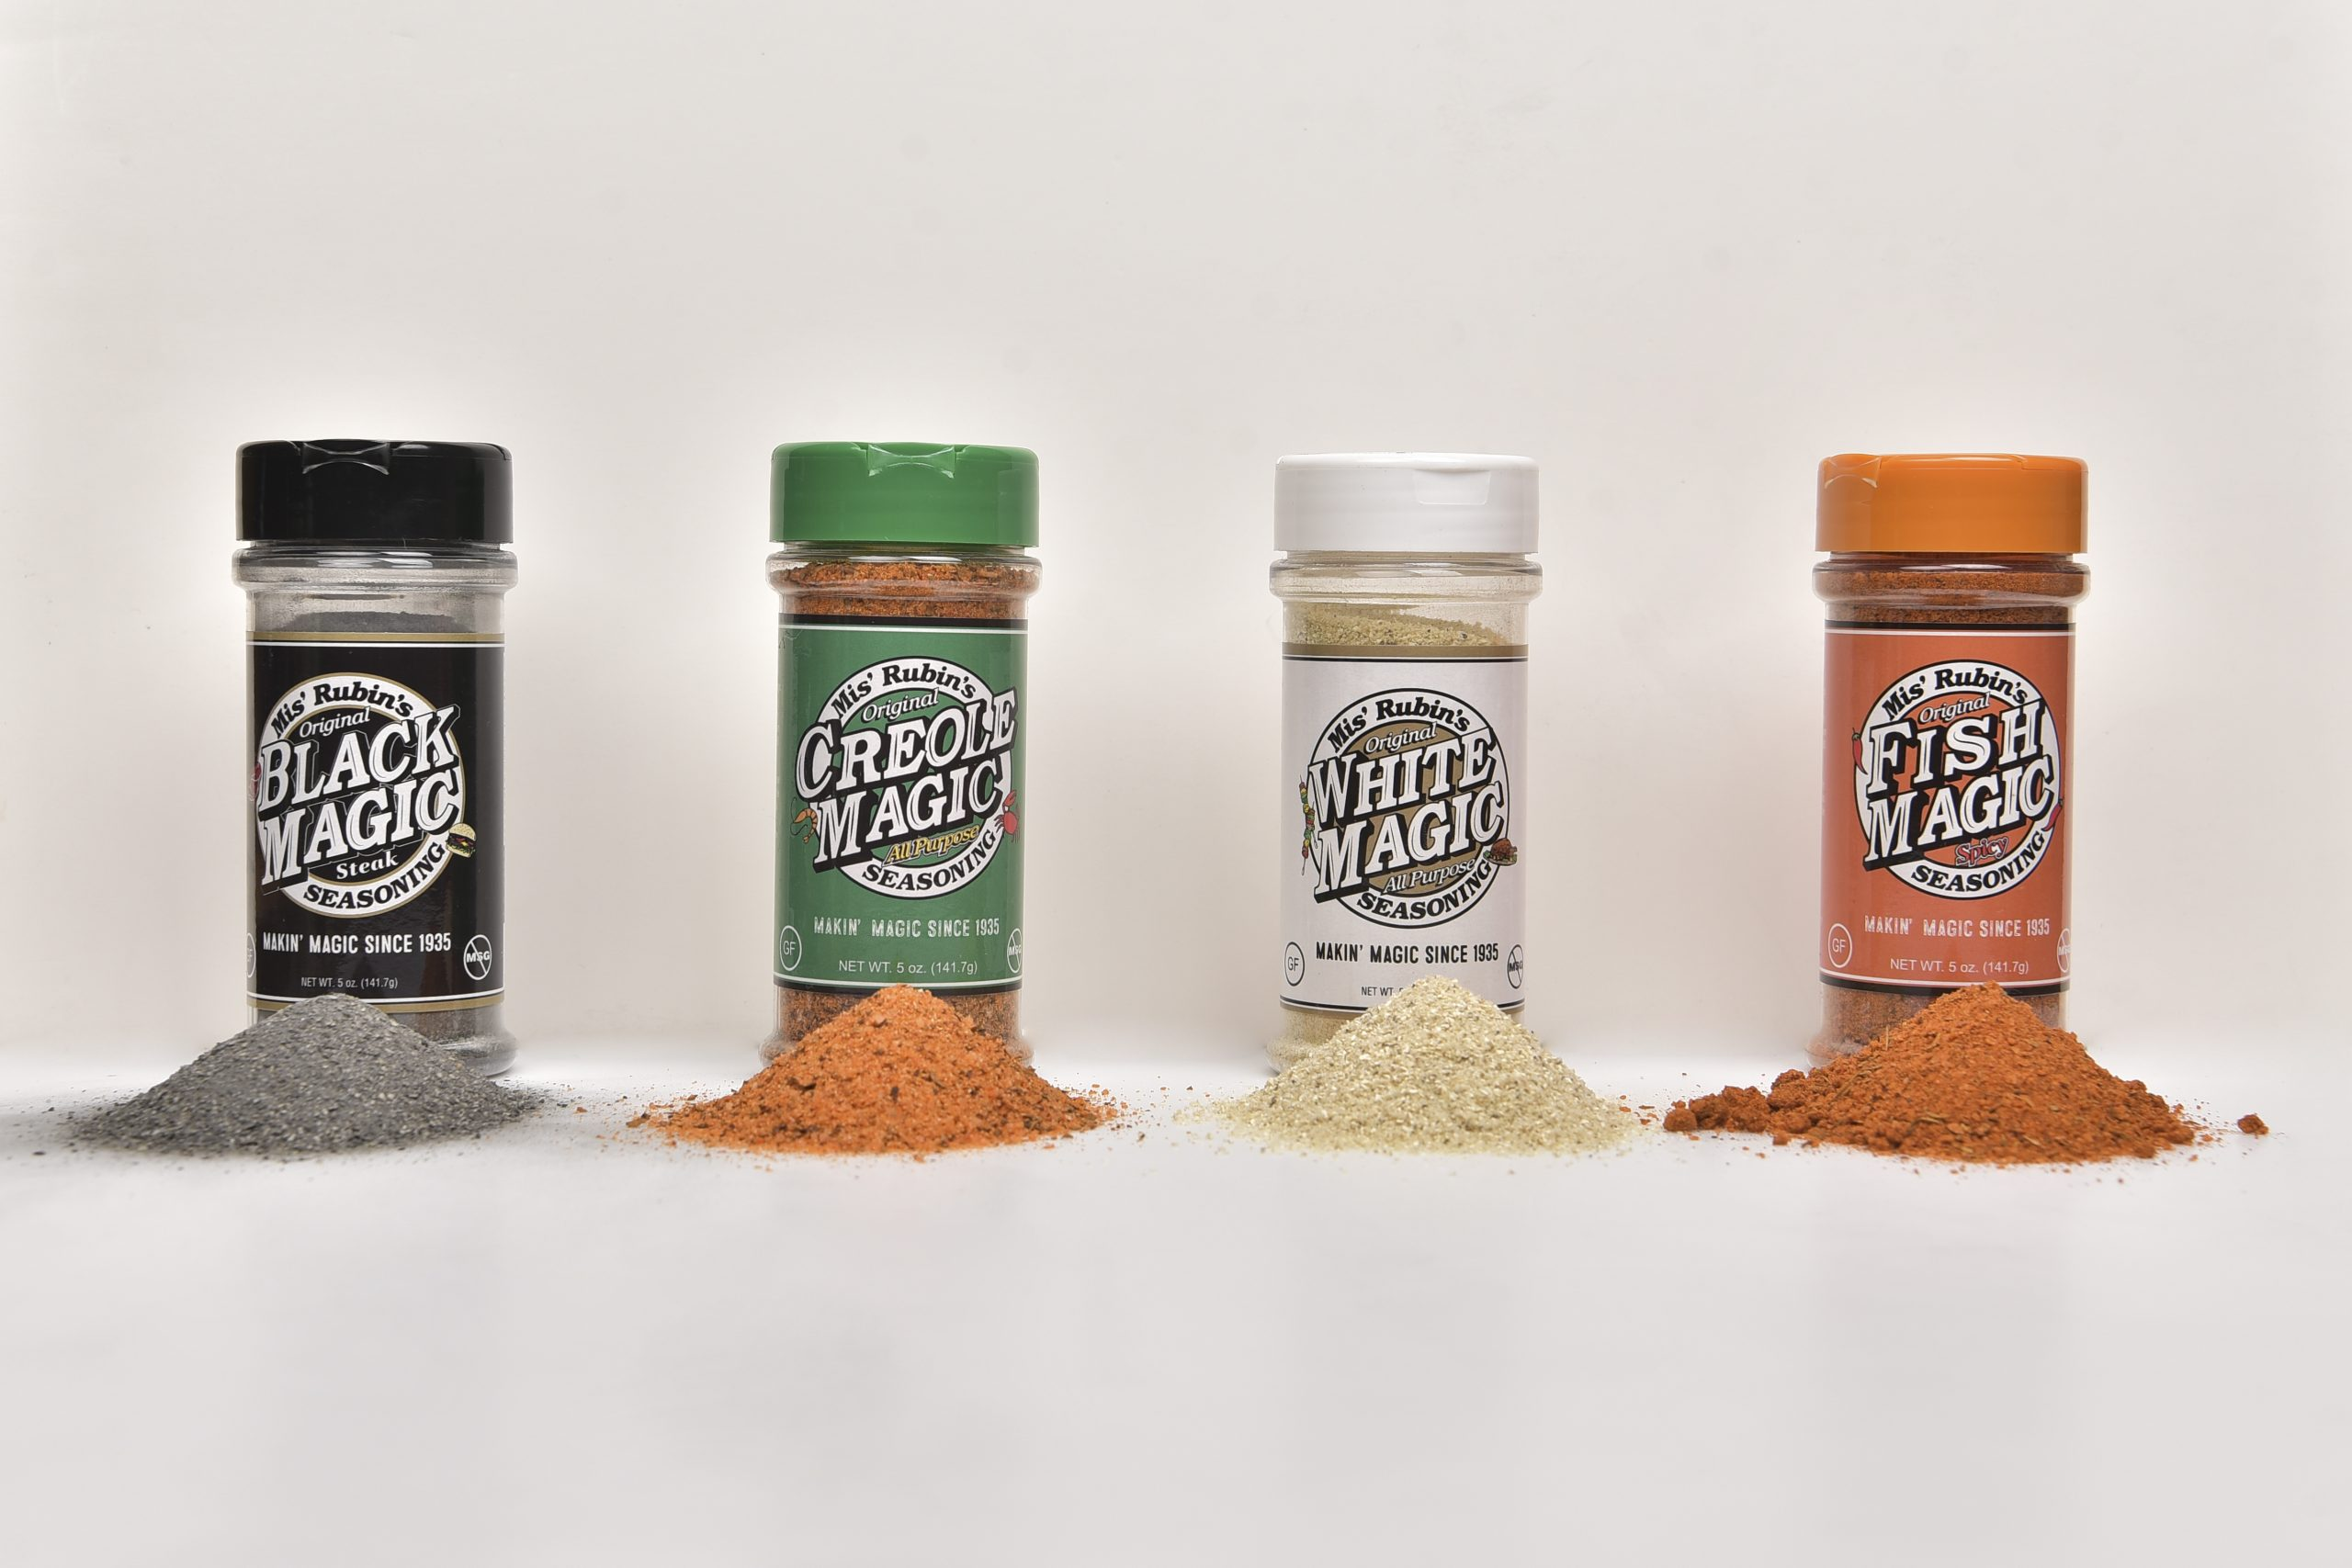 Look For Mis' Rubin's Seasonings On Sale Now At Publix + Enter My Giveaway! on I Heart Publix